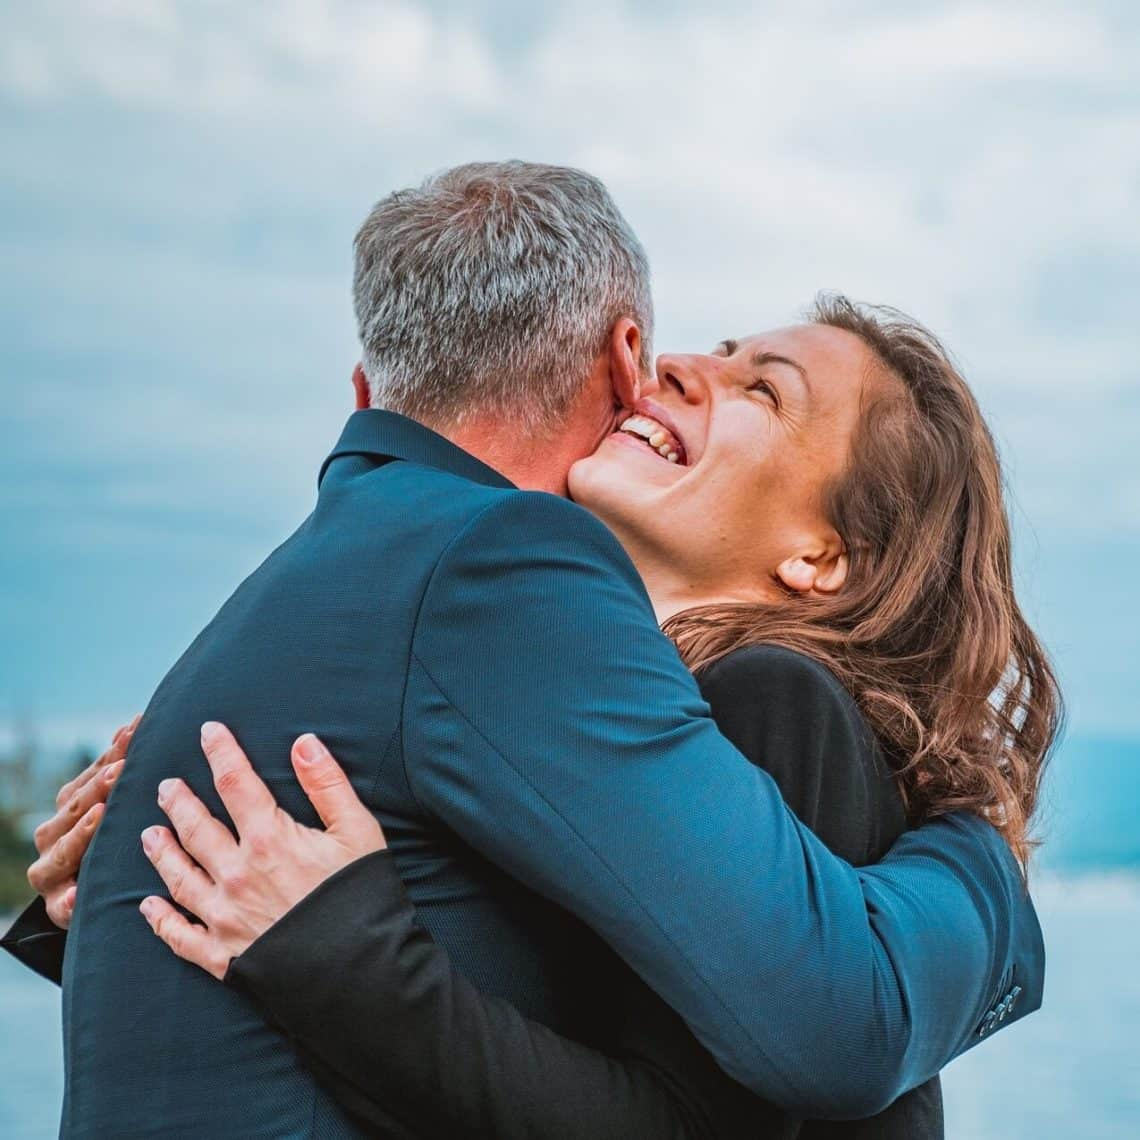 A happy couple hugs and smiles under a blue sky. When you release your self-limiting beliefs, you open your heart and let more love into your life.